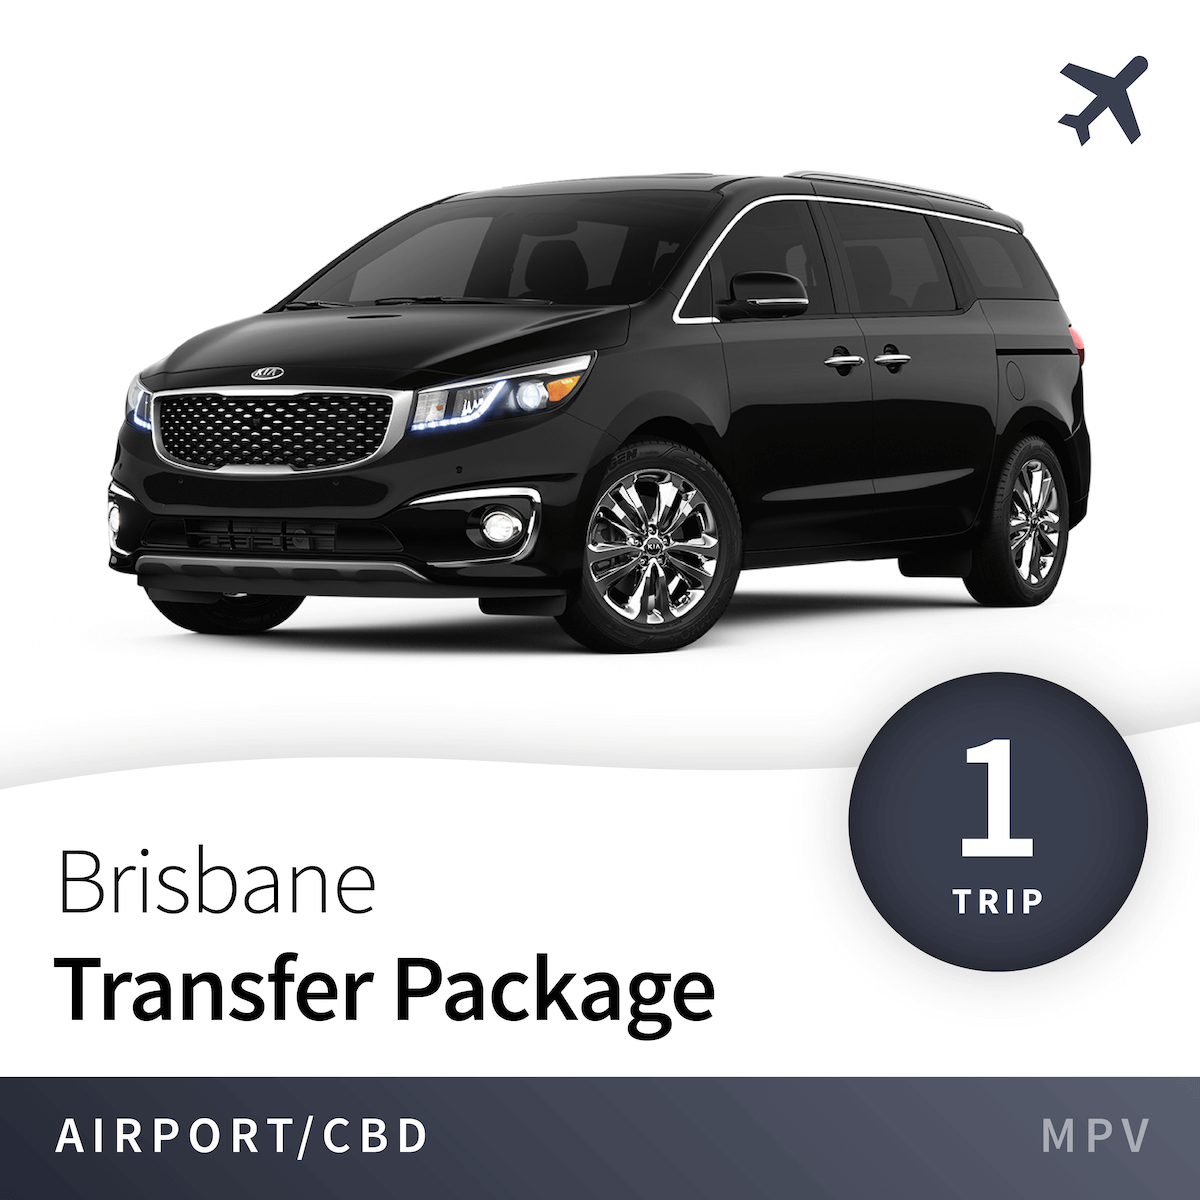 Brisbane Airport Transfer Package - MPV (1 Trip) 9